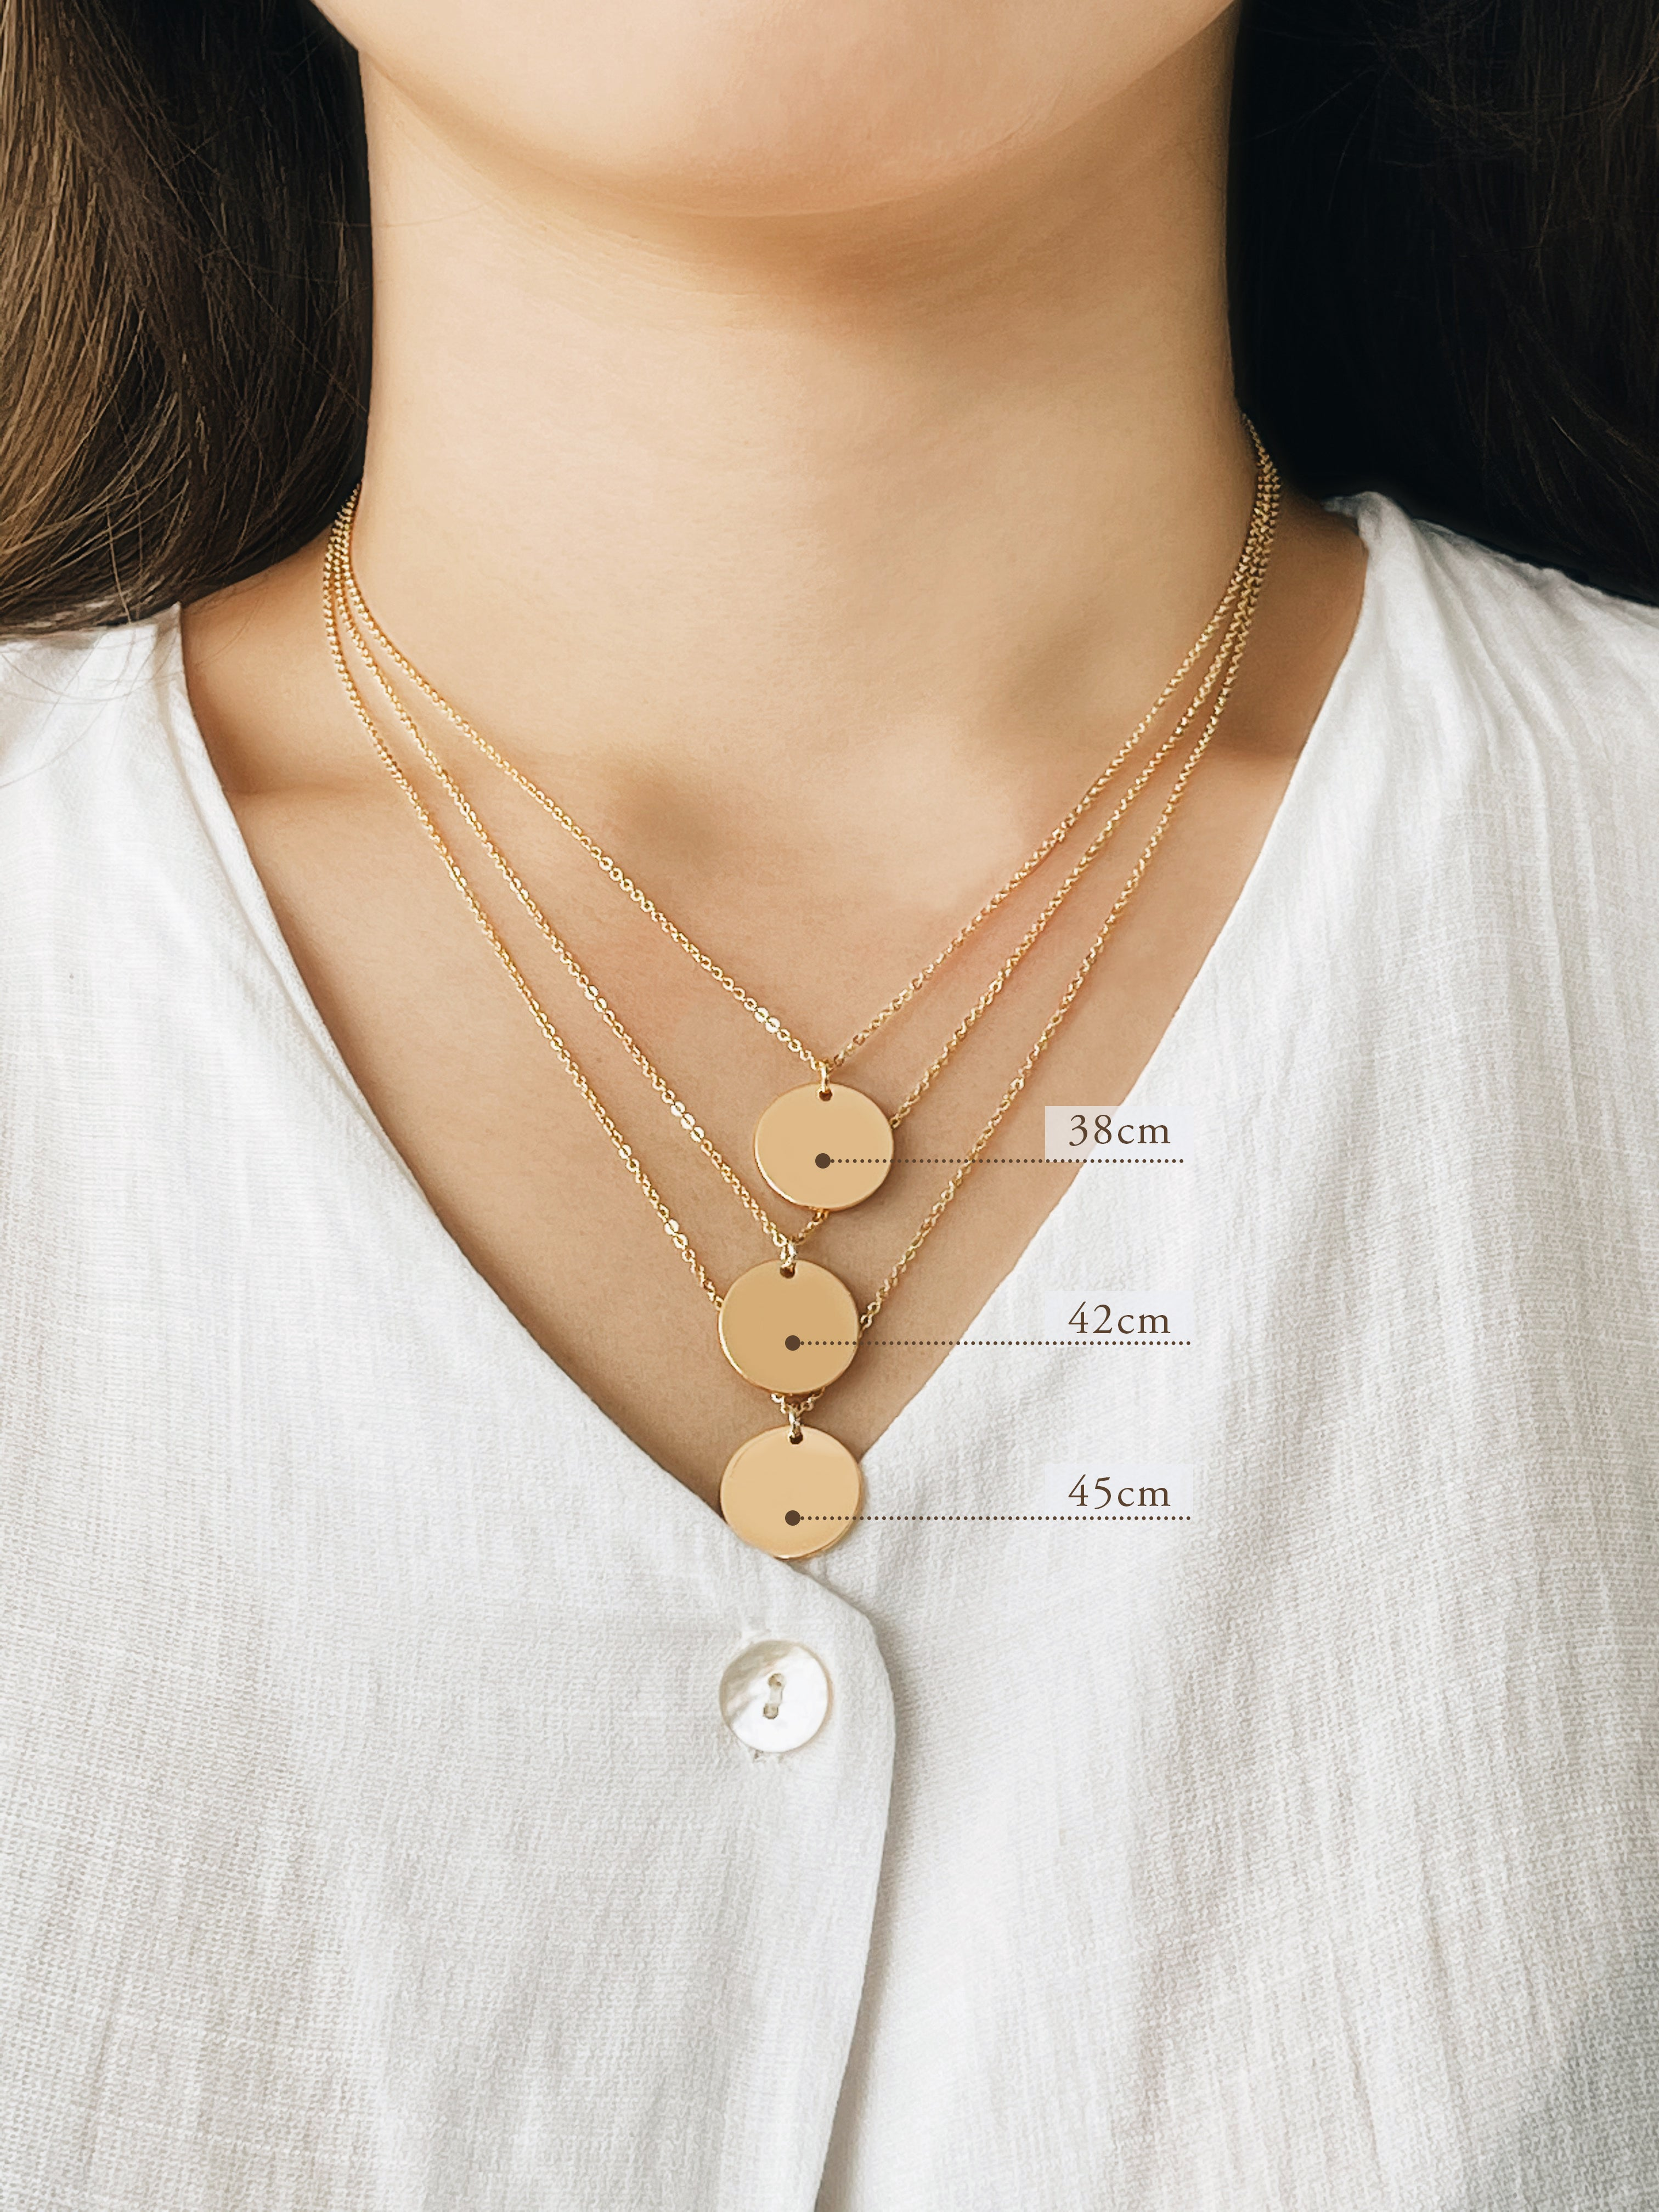 Tender Objects Necklace chain lengths